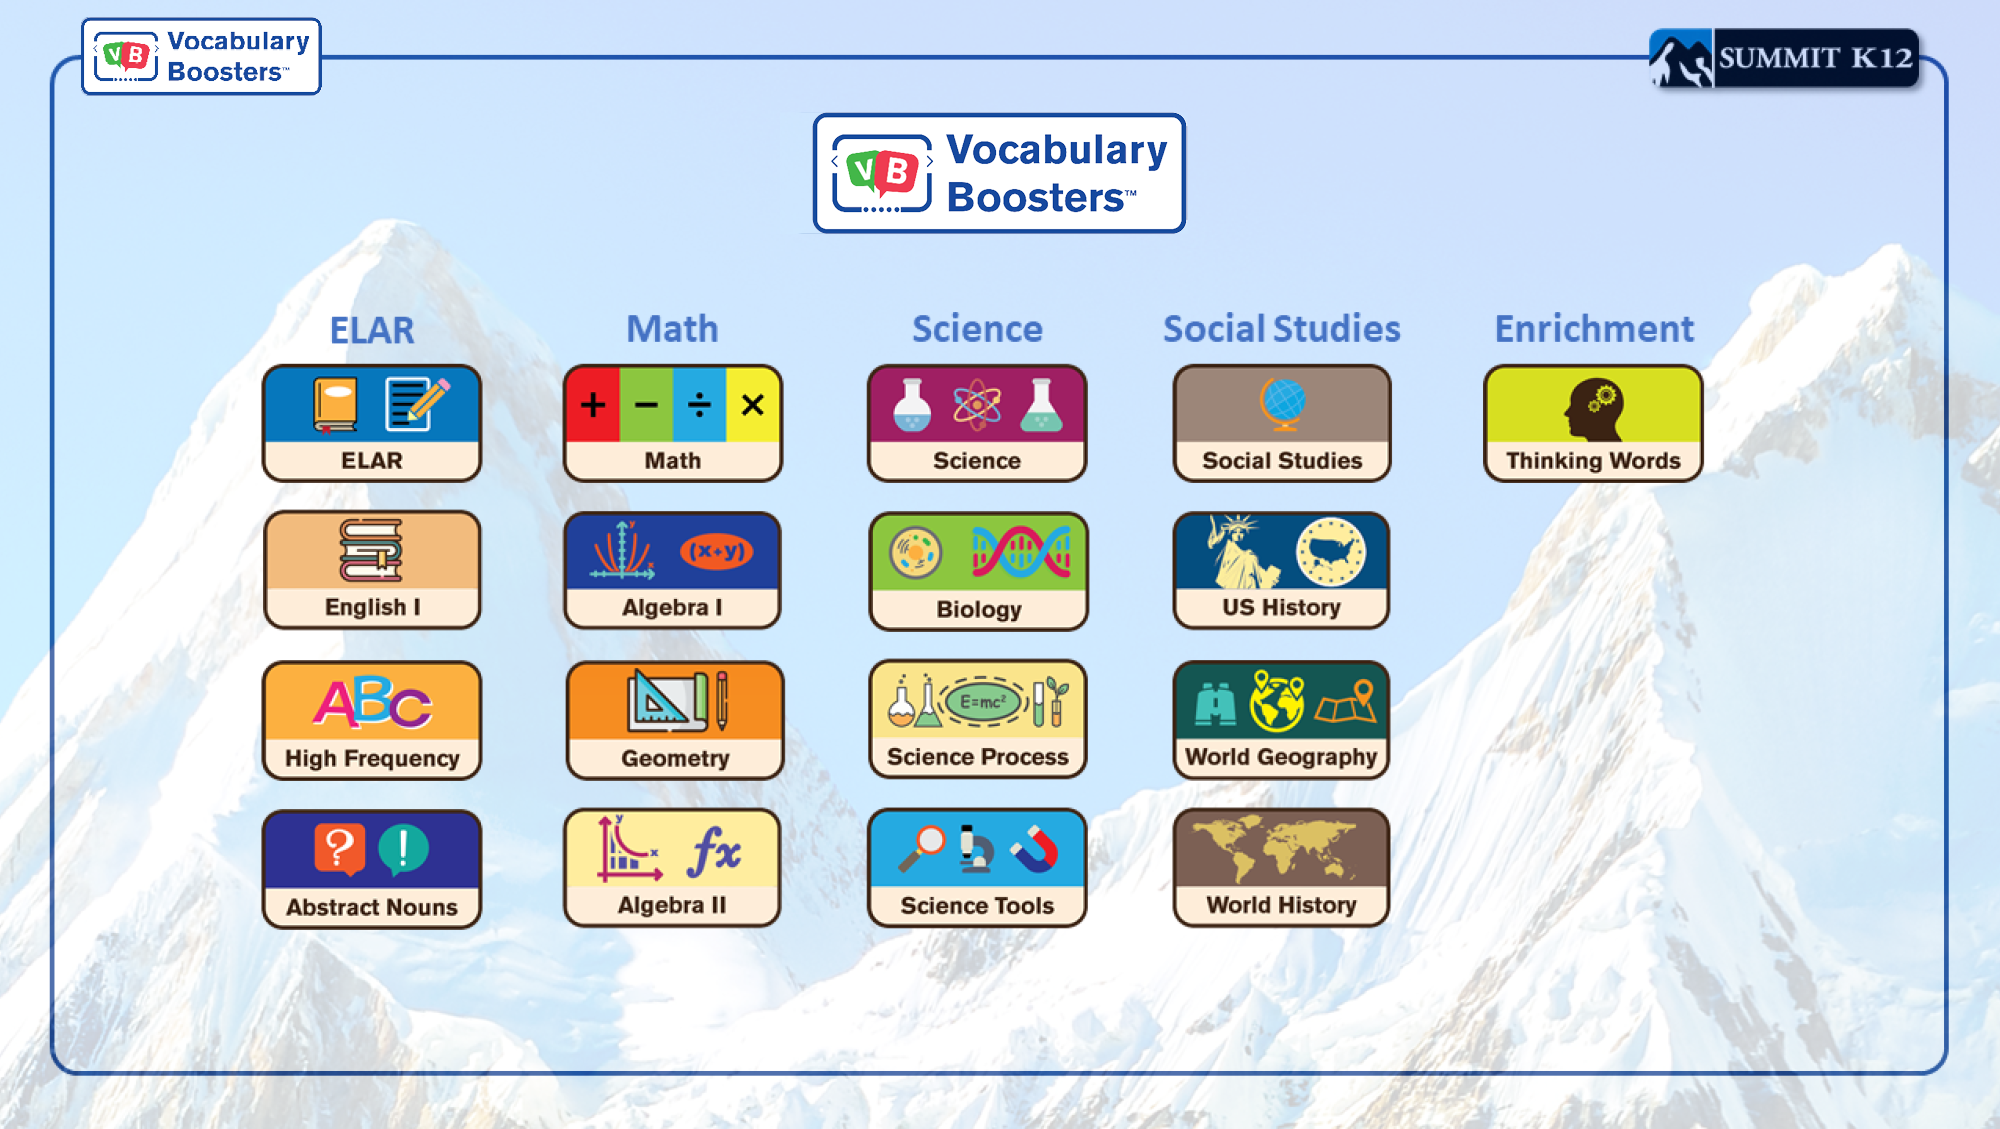 Vocabulary Boosters Subjects